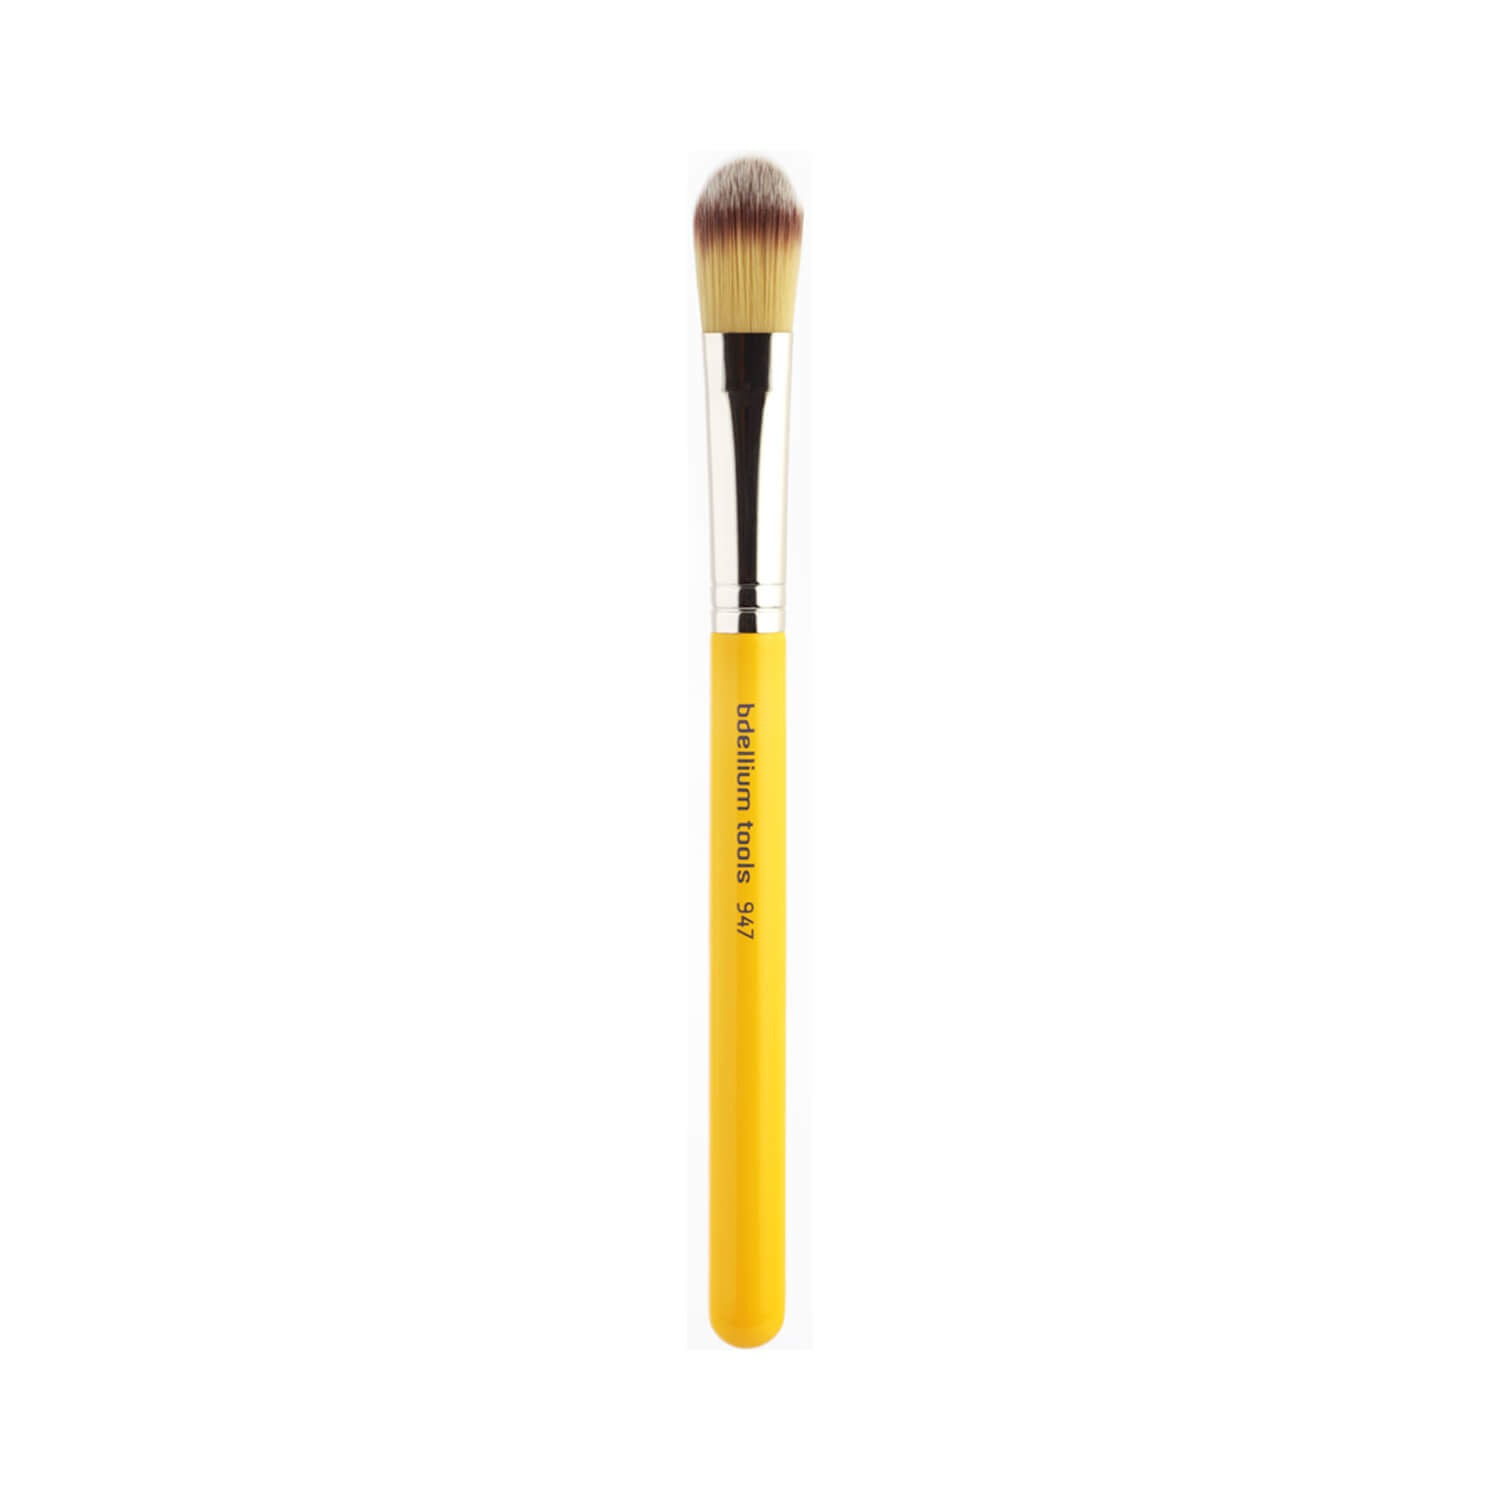 BDellium Tools Studio Line 947 Small Foundation Brush Yellow